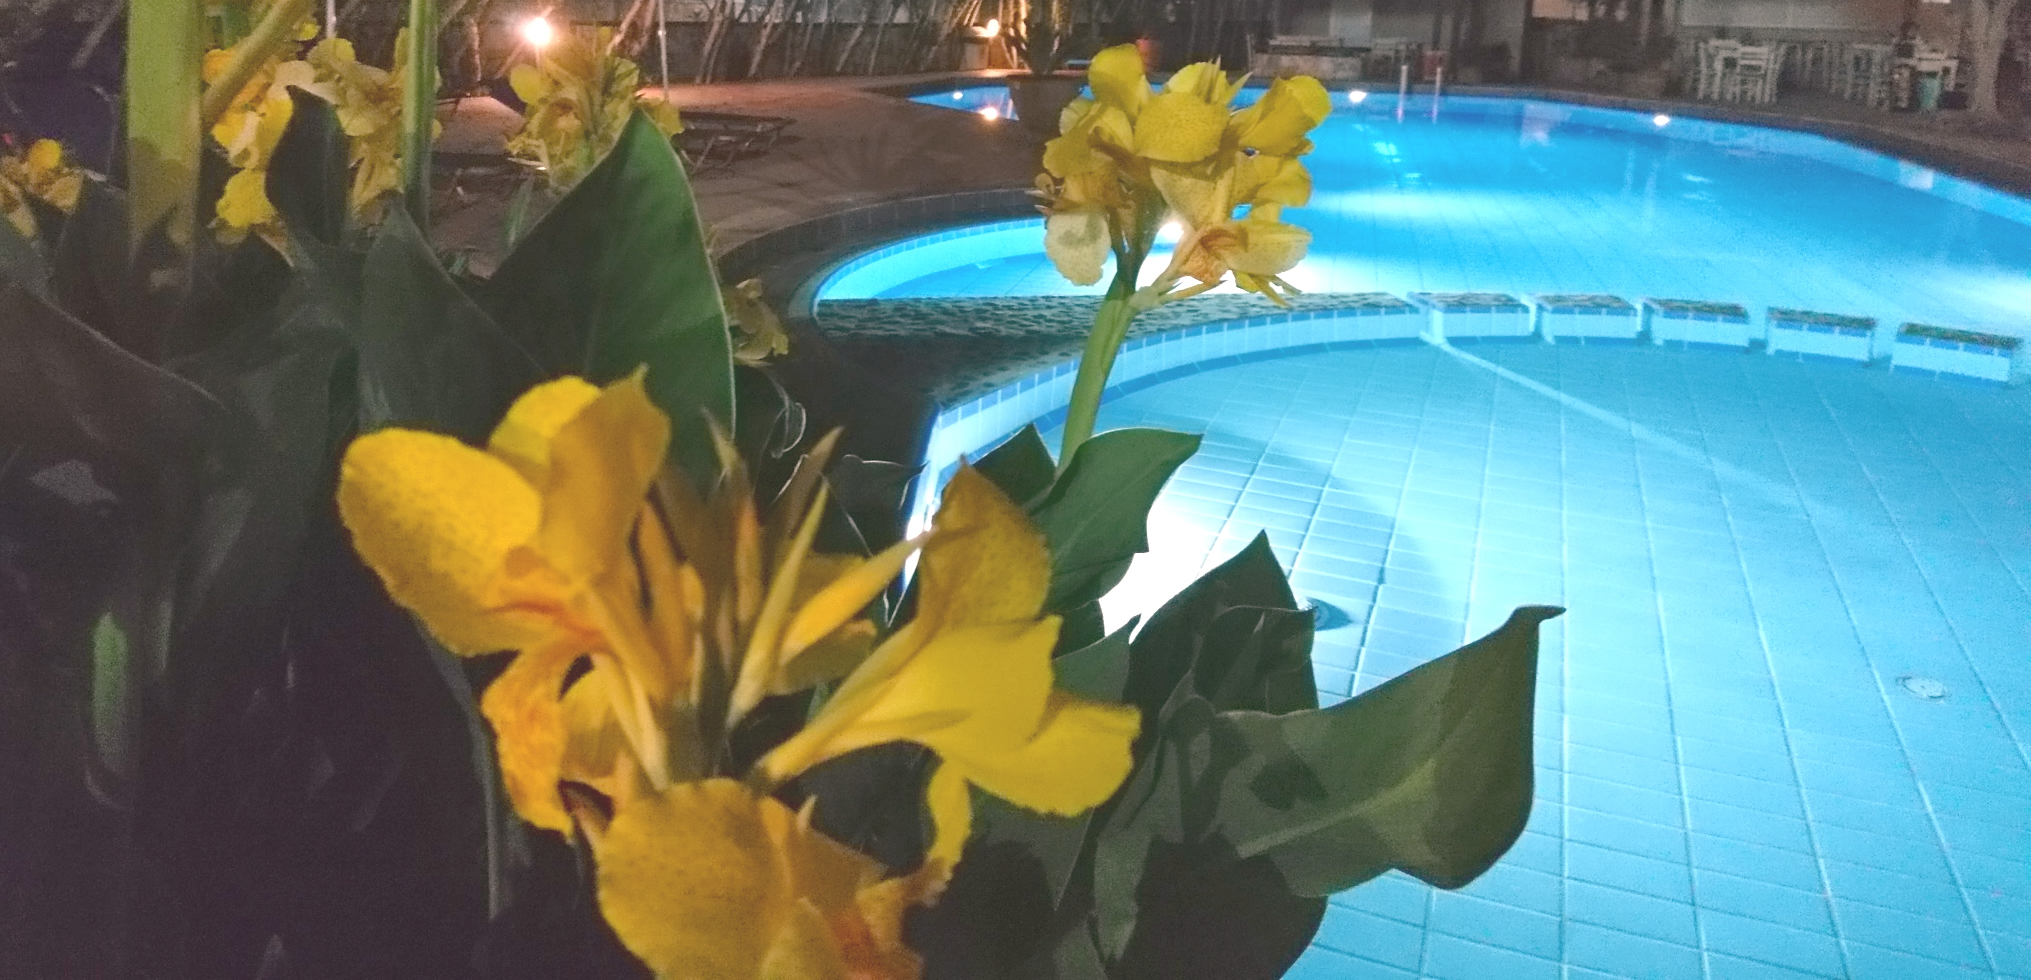 Lefka apartments pool in the night